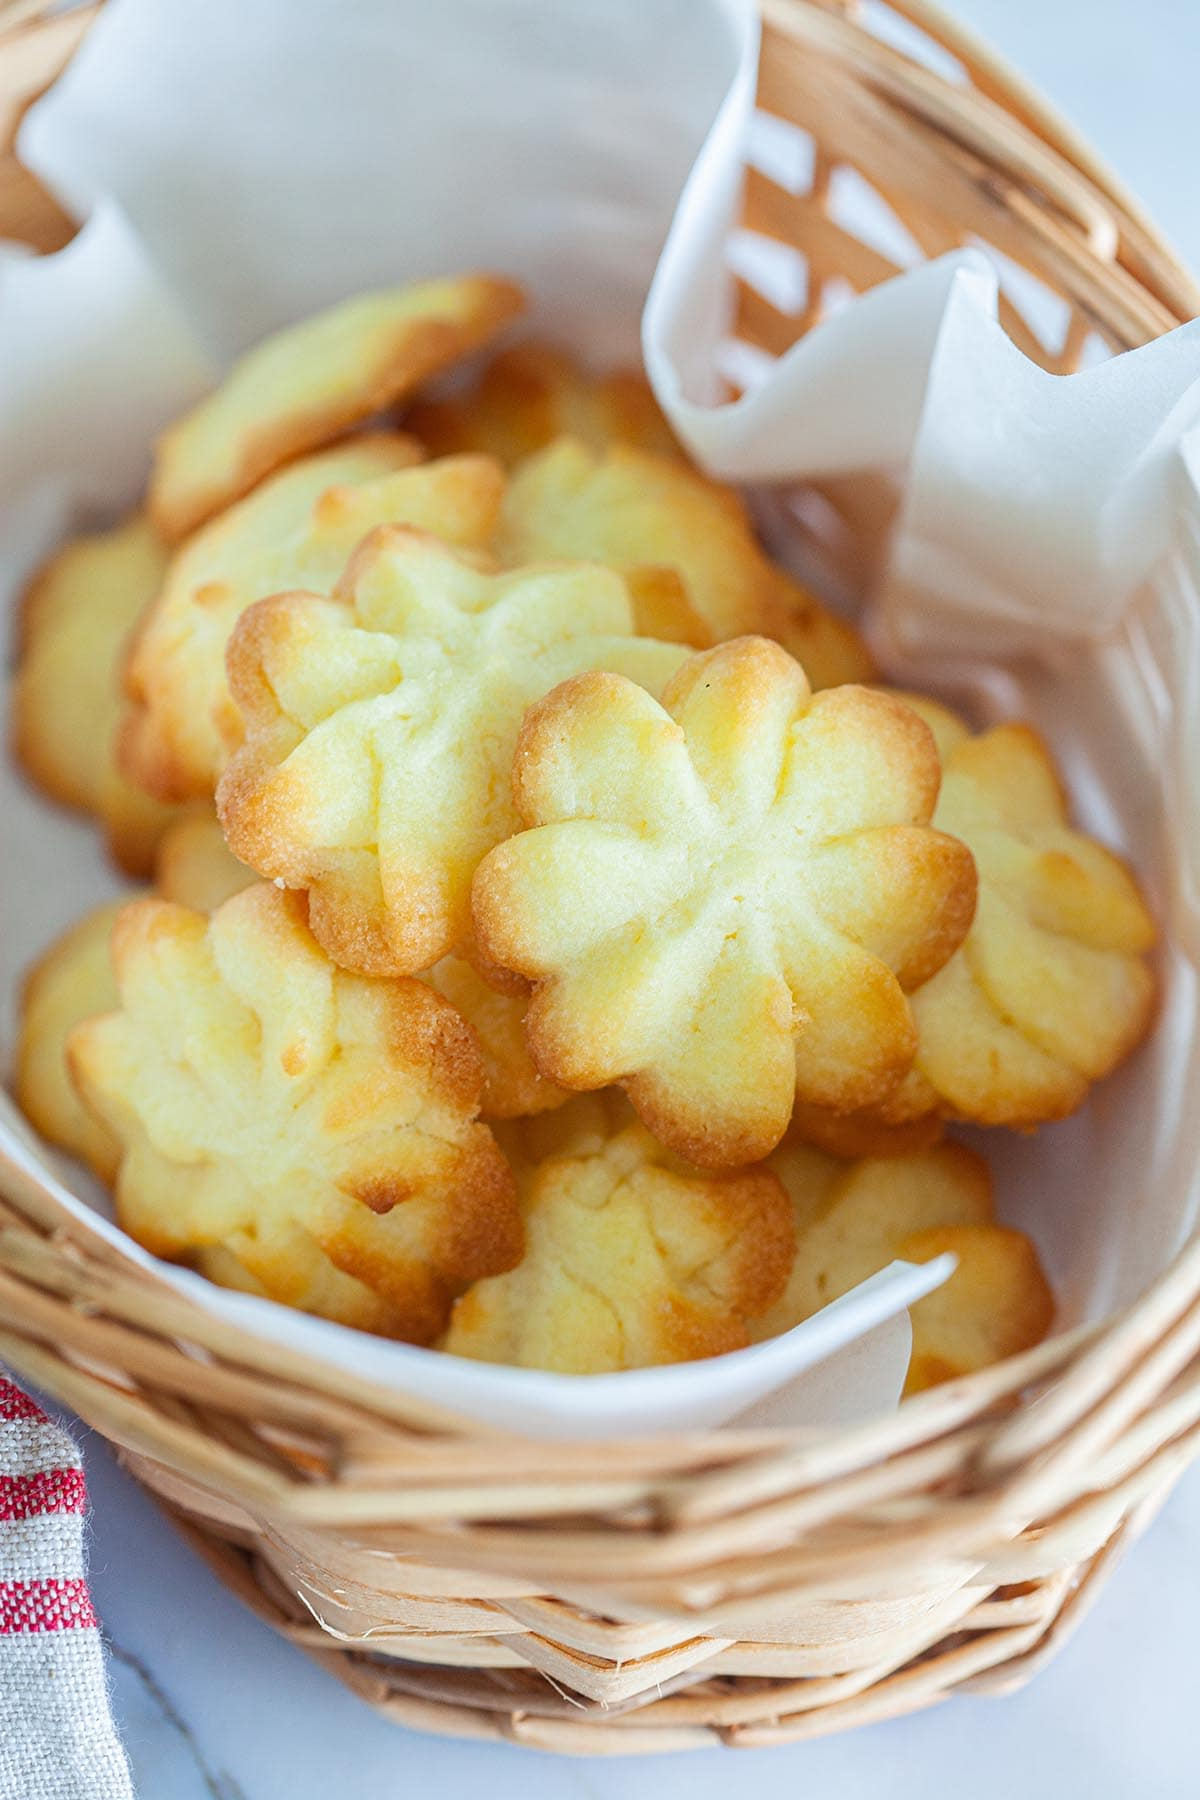 Danish butter cookies in a tray.